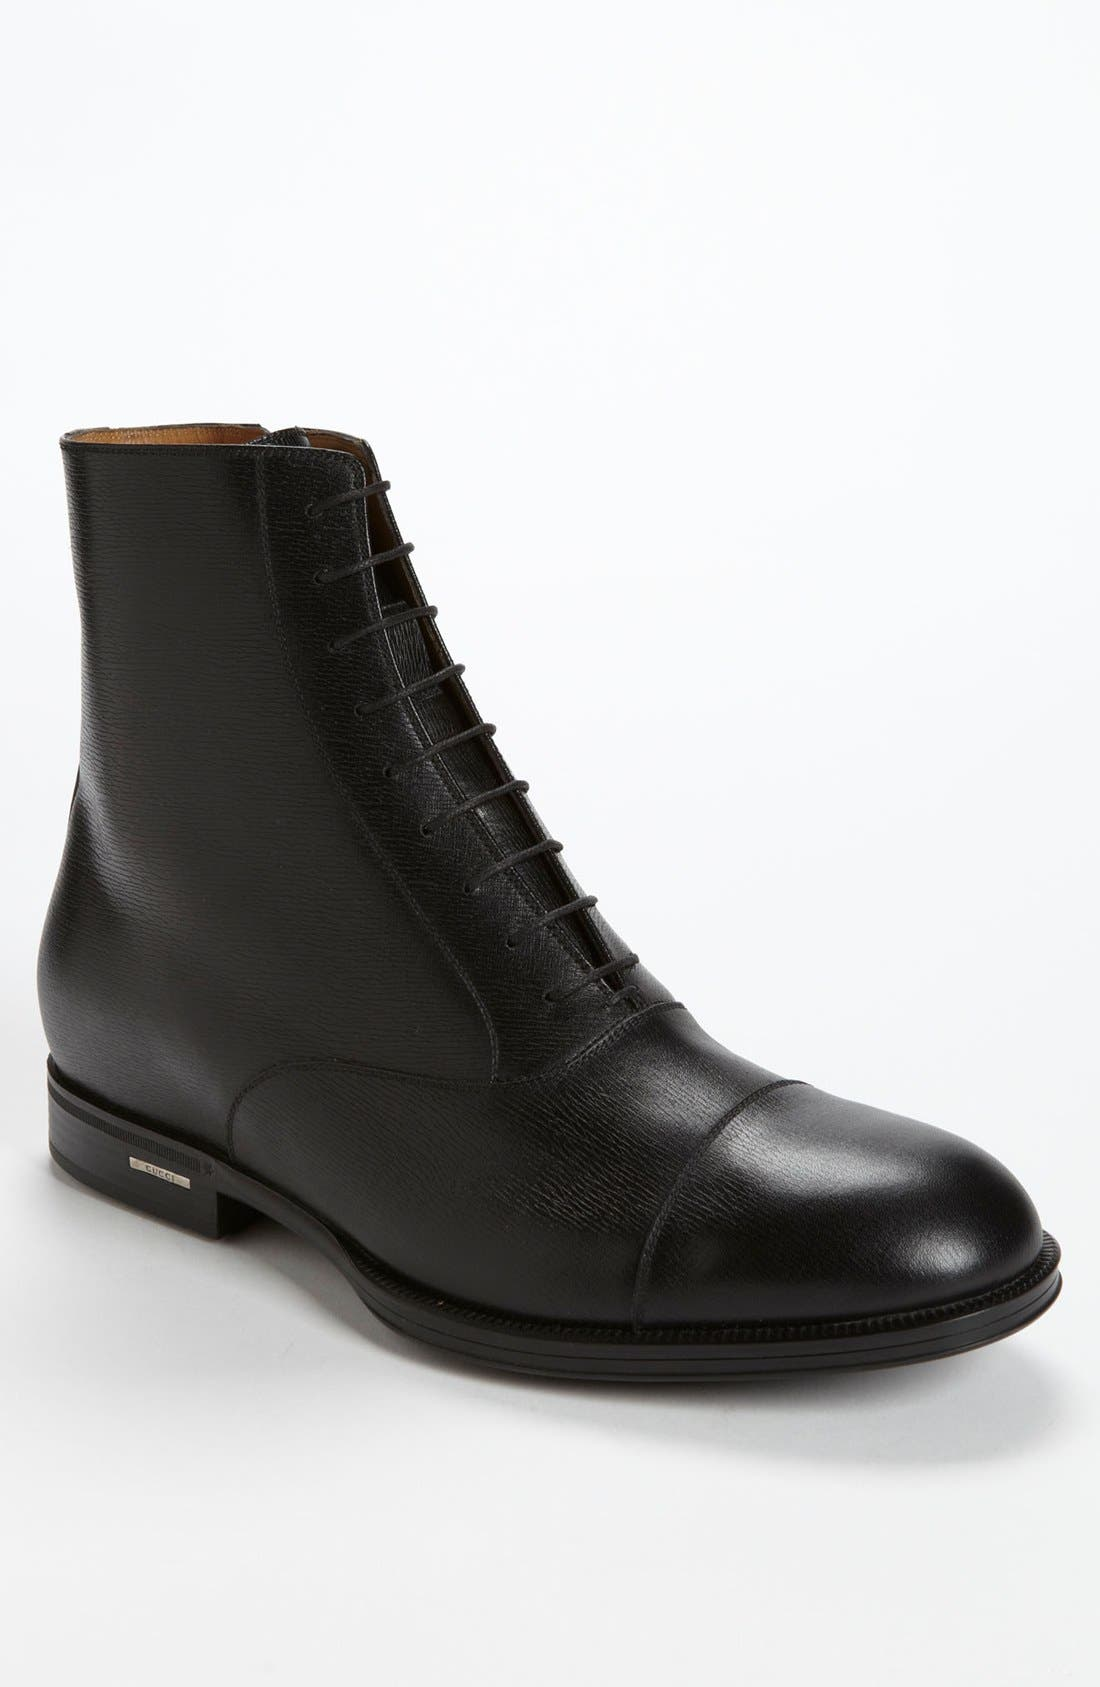 Alternate Image 1 Selected - Gucci 'Handir' Cap Toe Boot